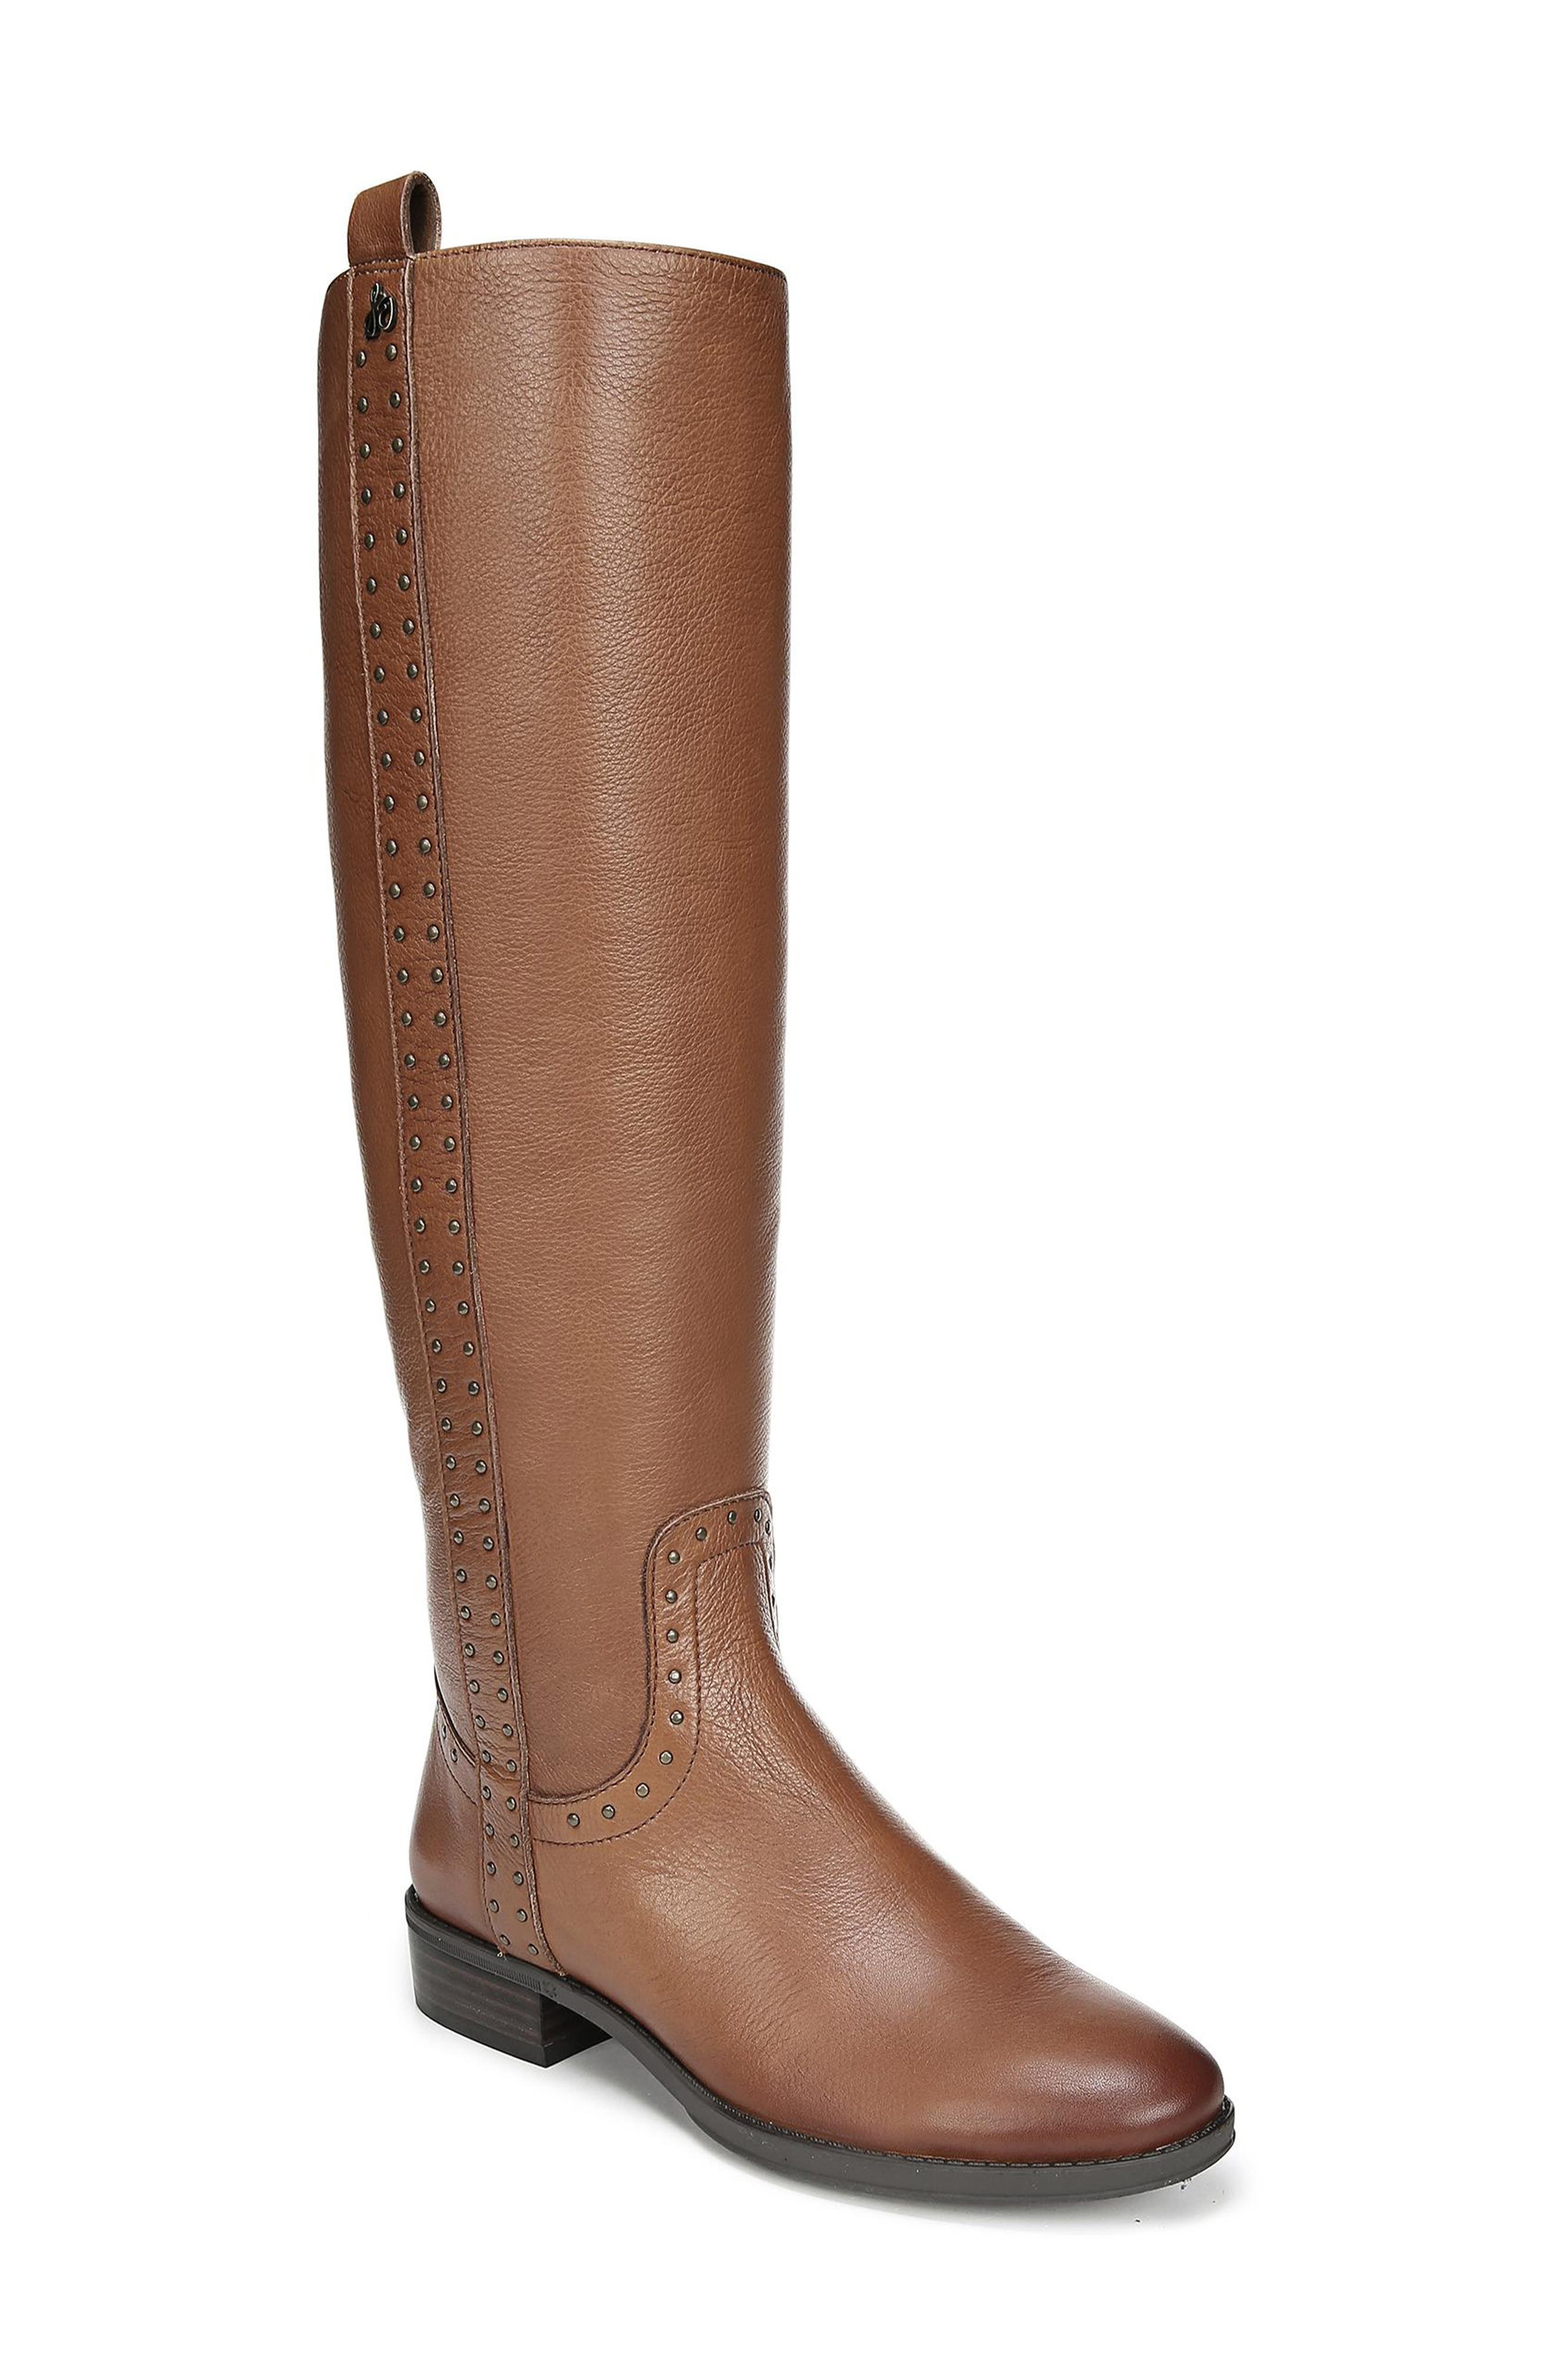 Sam Edelman Prina Riding Boot- Brown